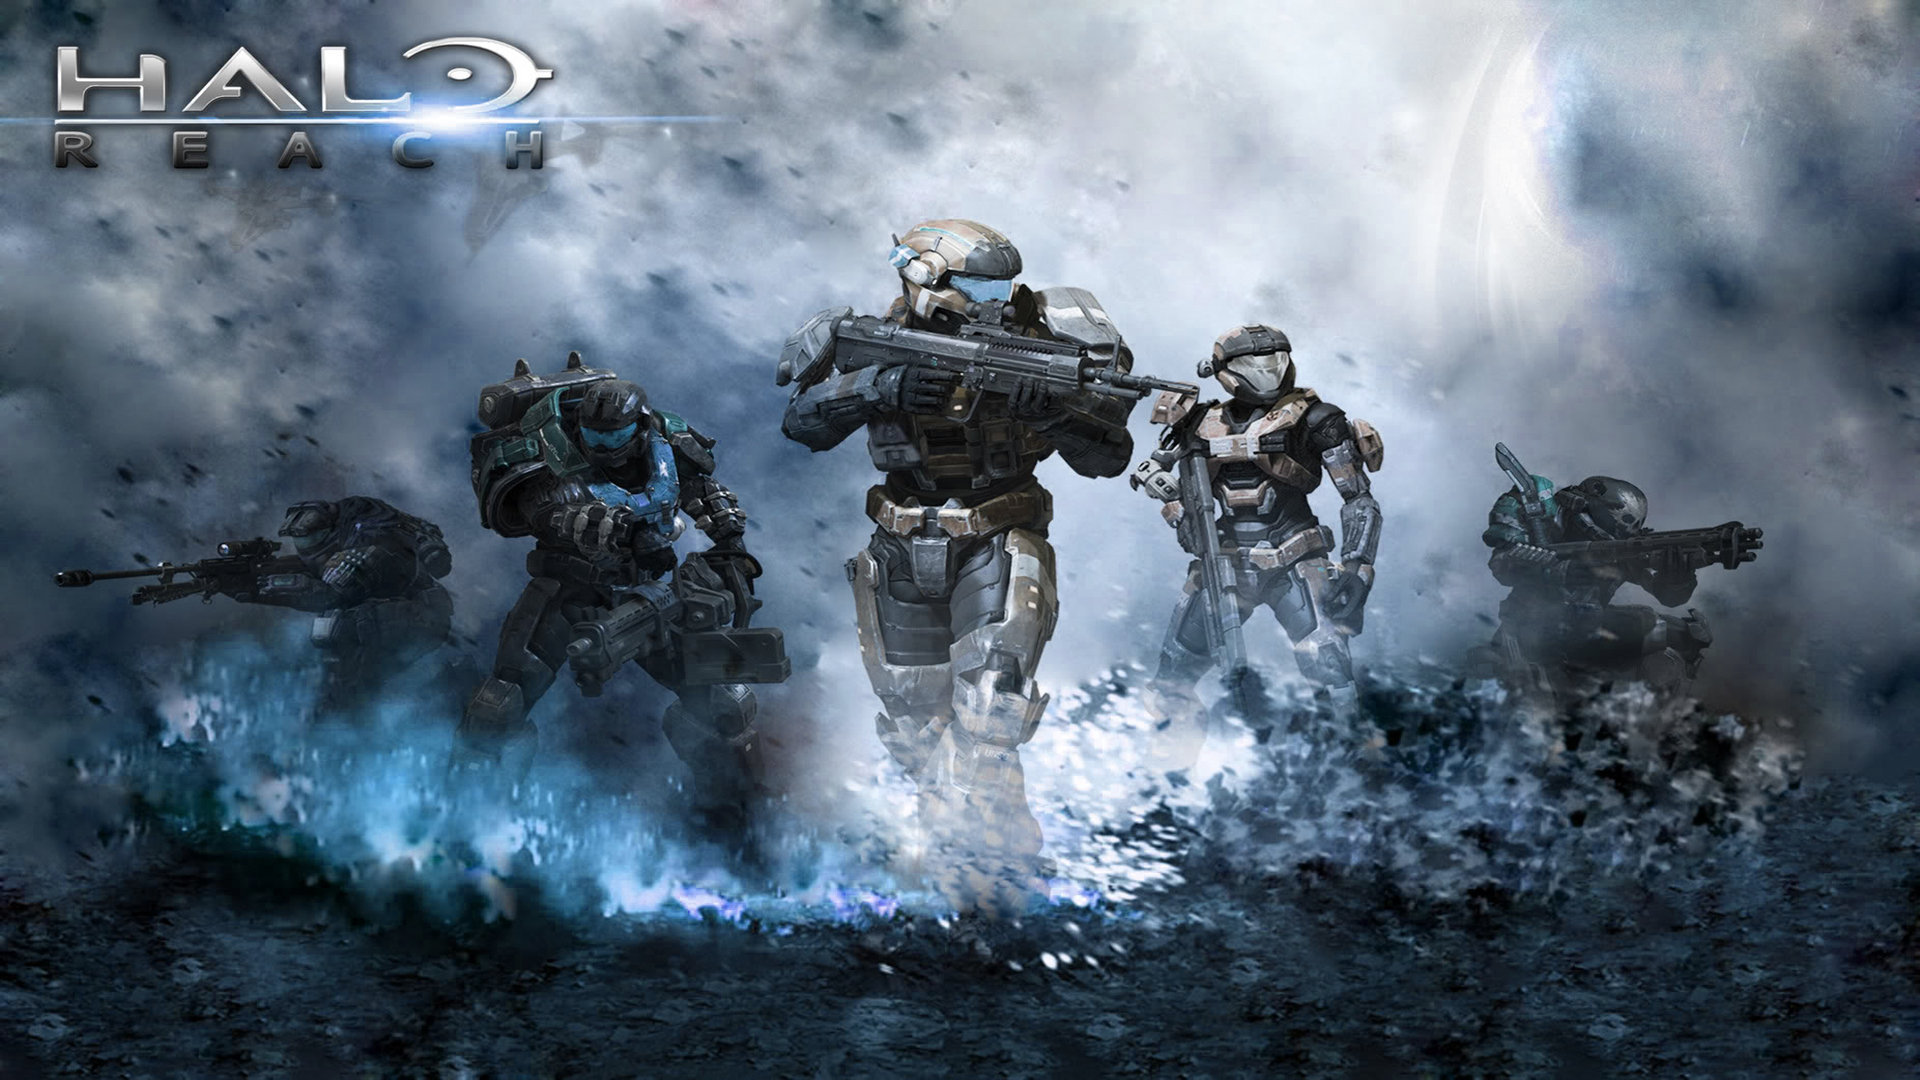 Halo Wallpaper HD download 1920x1080